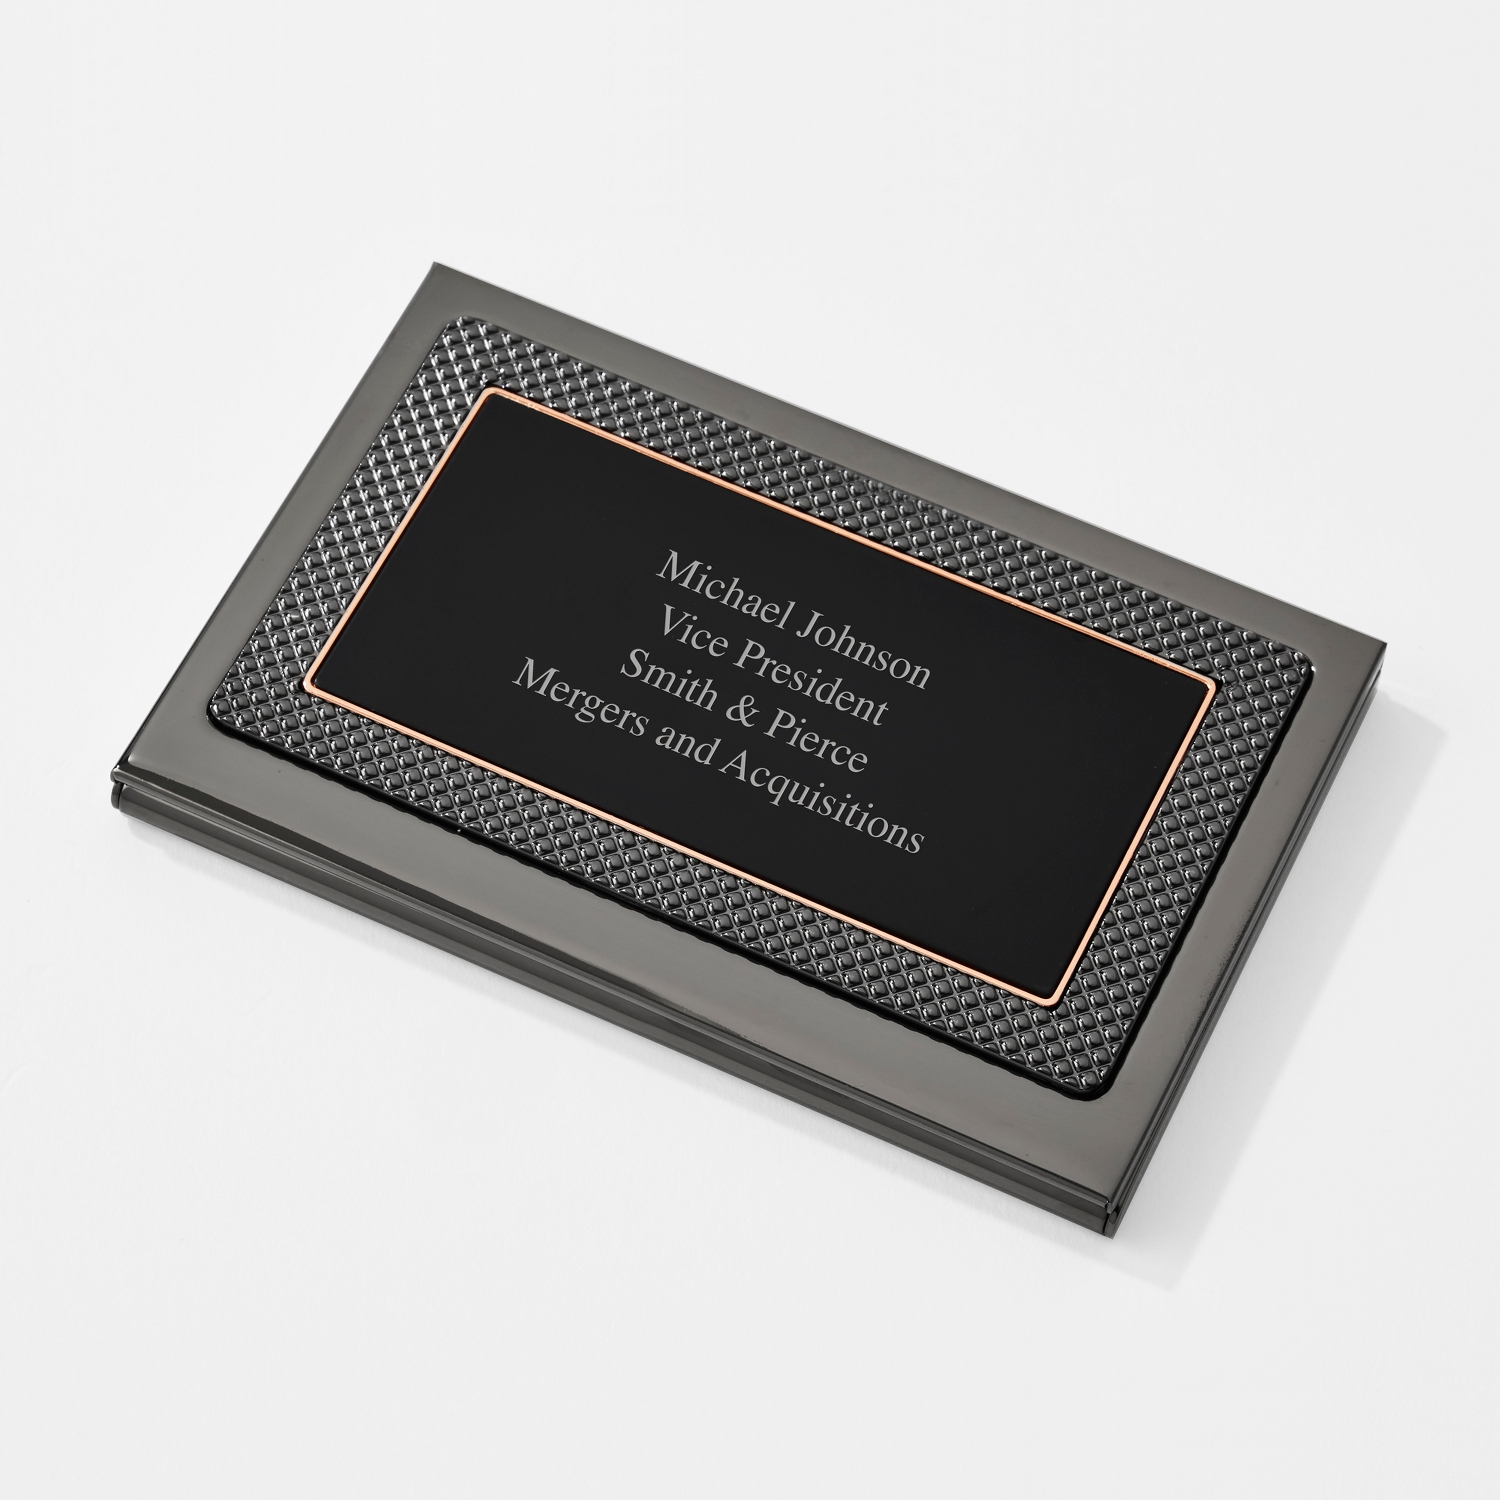 Personalized Business Card Holders & Cases at Things Remembered